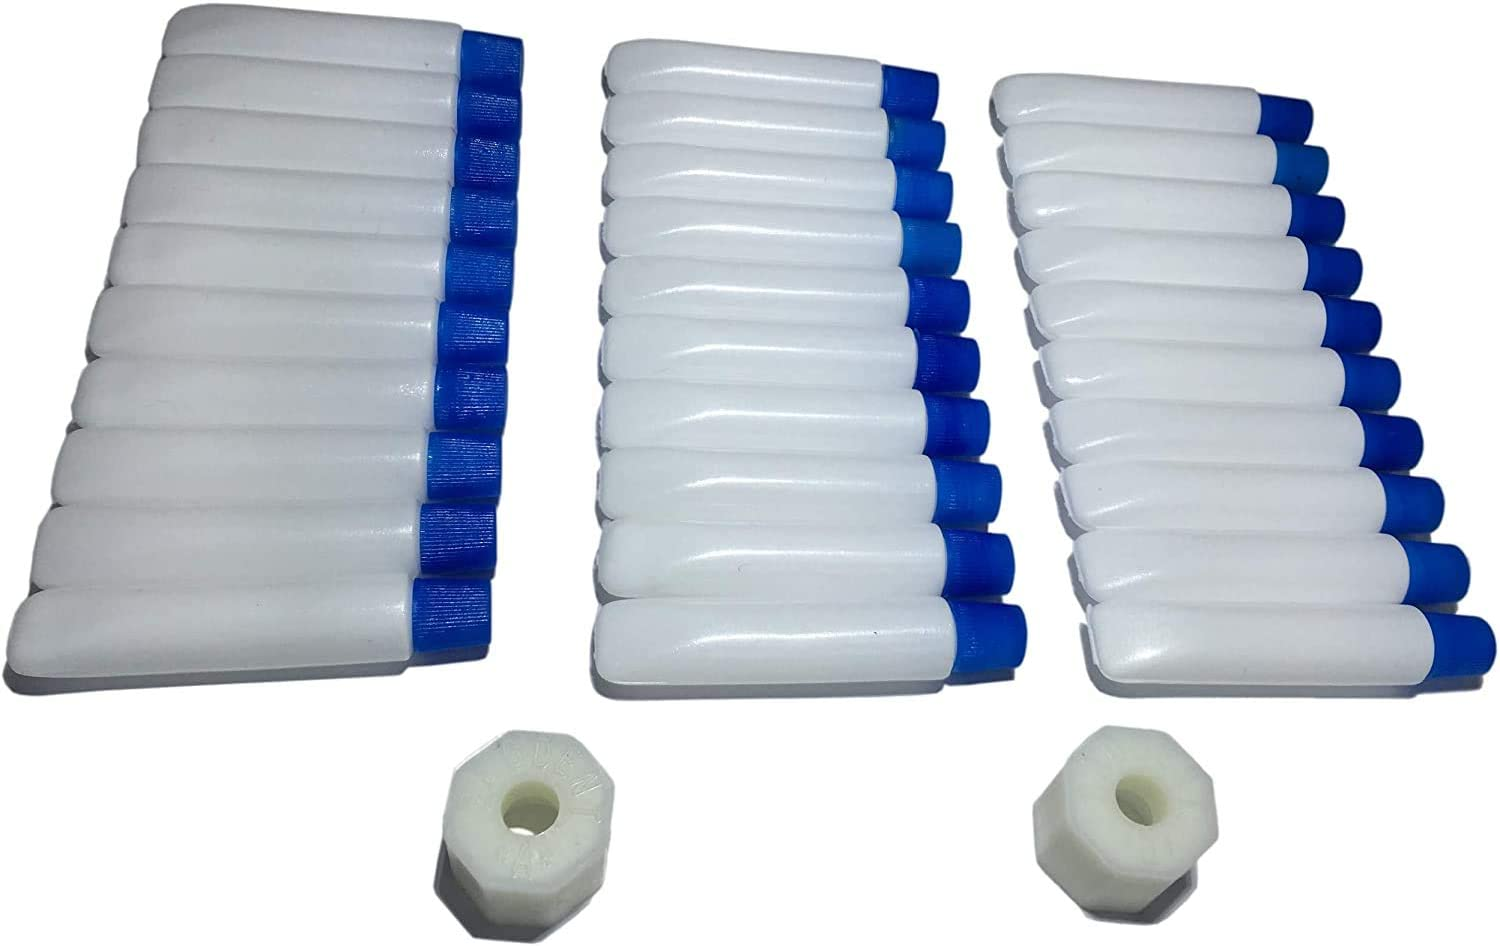 Travel Bottles Set - 30x Empty Mini Tubes 0,12 ounce + 2x Filling Adapters, Make Your Own Travel size Toiletries